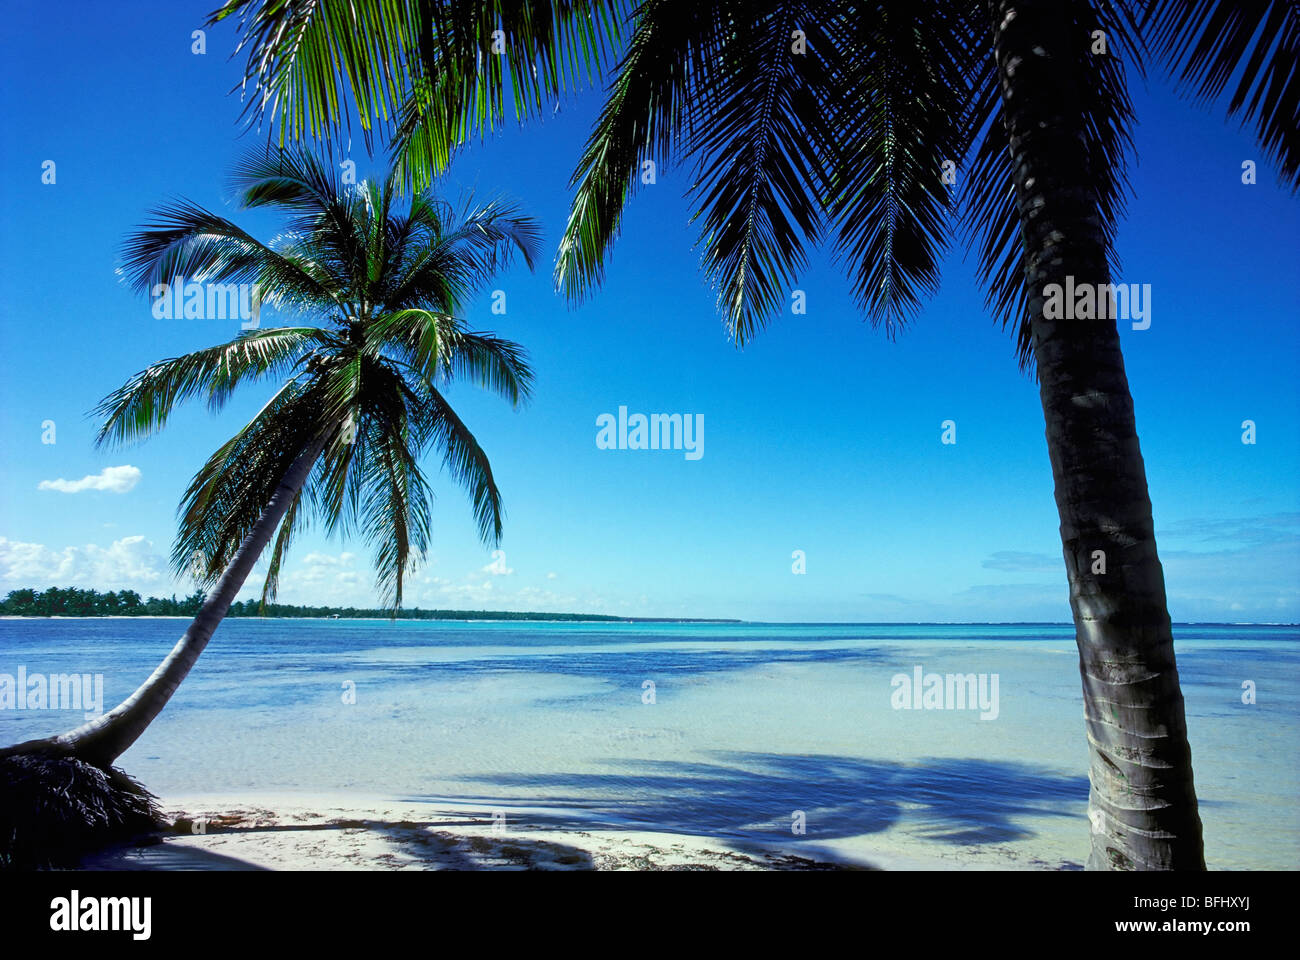 Palm trees on beach, Punta Cana, Dominican Republic - Stock Image